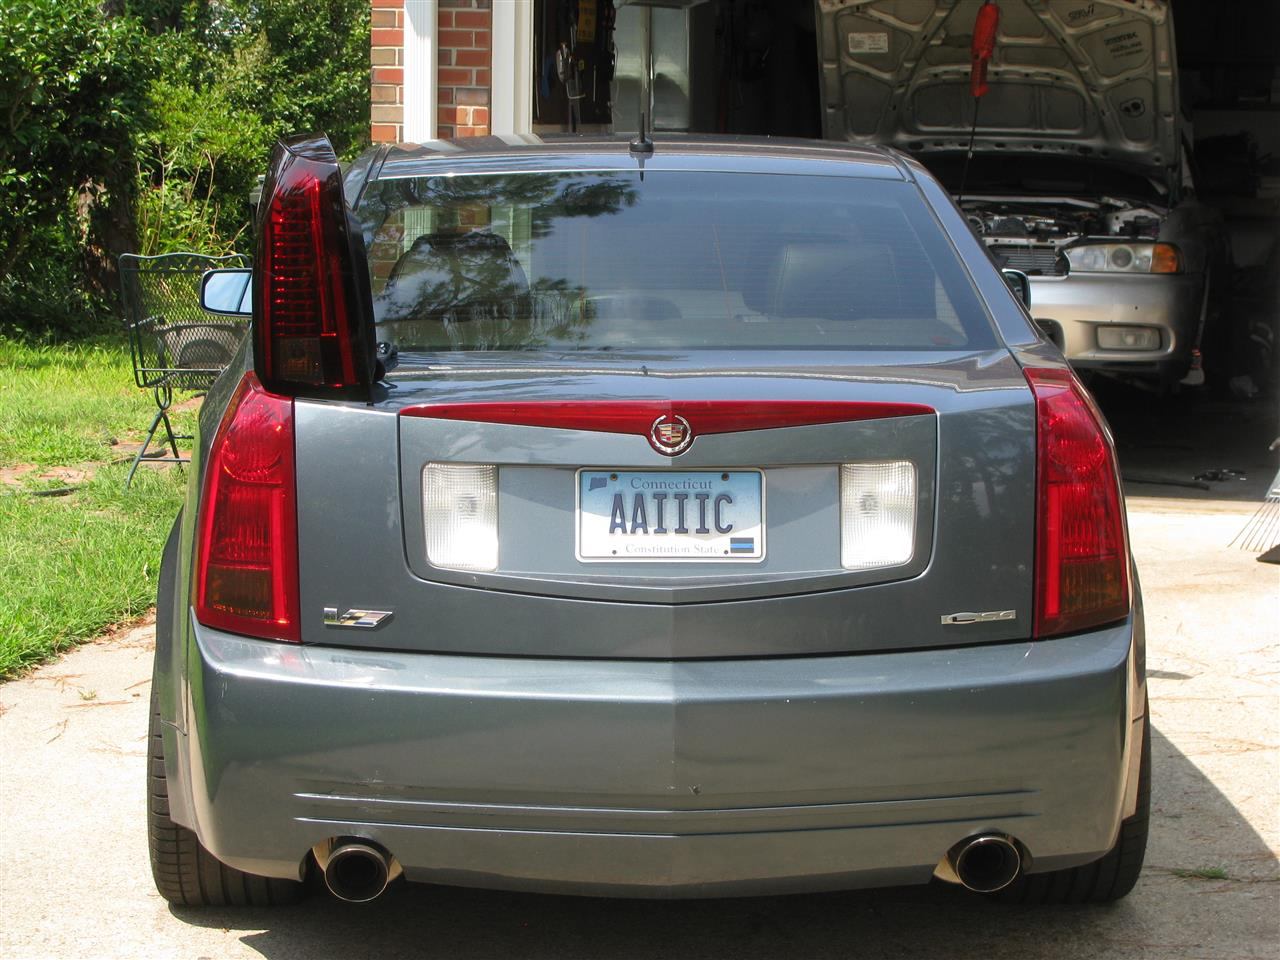 Led taillights on stealth grey 05 archive cadillac forums cadillac owners forum